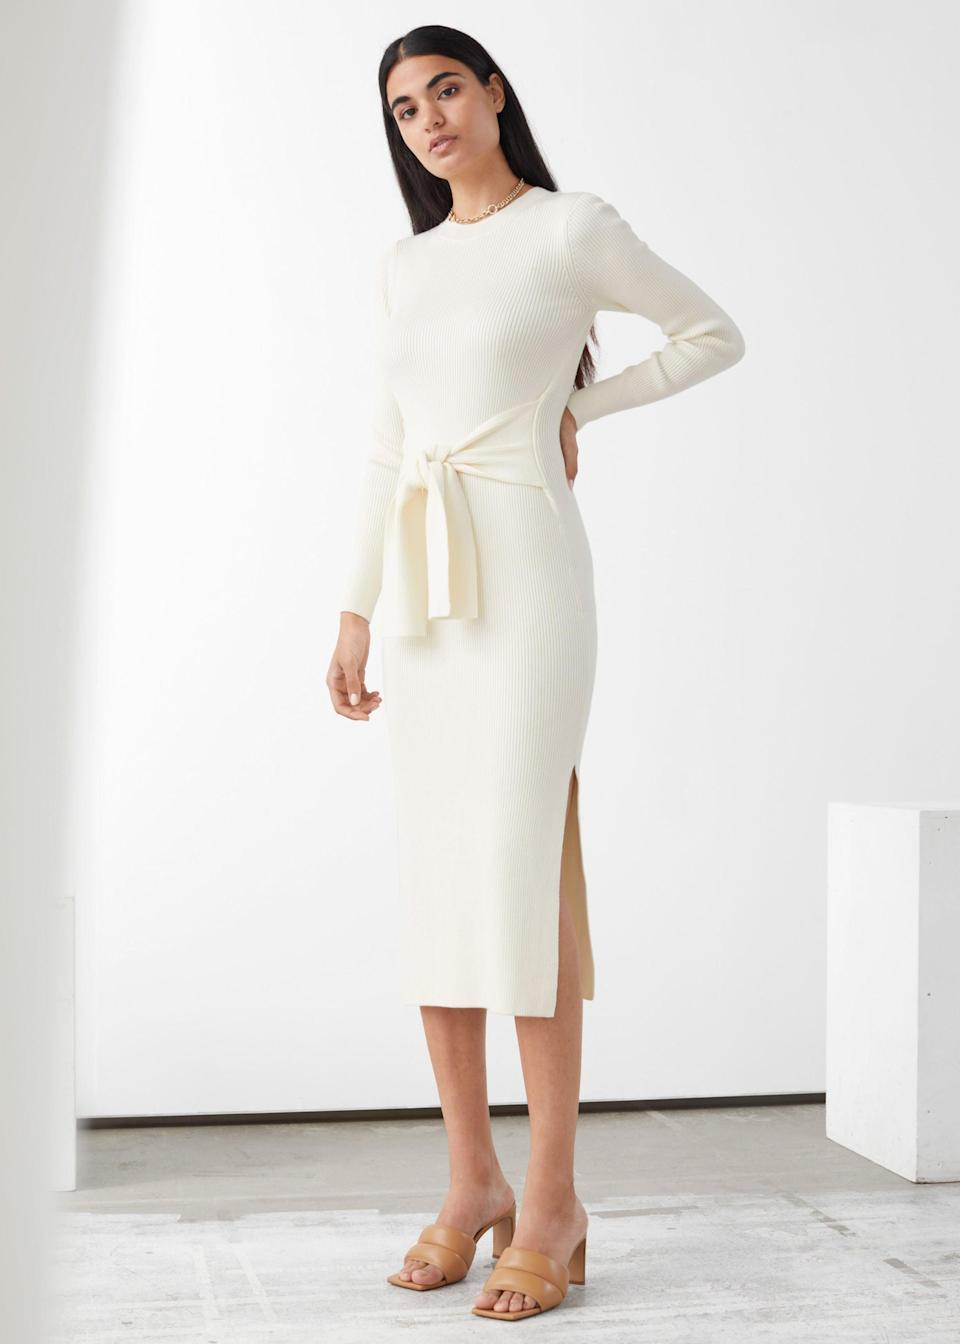 """<br><br><strong>& Other Stories</strong> Belted Rib Midi Dress, $, available at <a href=""""https://go.skimresources.com/?id=30283X879131&url=https%3A%2F%2Fwww.stories.com%2Fen_usd%2Fclothing%2Fdresses%2Fmidi-dresses%2Fproduct.belted-rib-midi-dress-white.0833188001.html"""" rel=""""nofollow noopener"""" target=""""_blank"""" data-ylk=""""slk:& Other Stories"""" class=""""link rapid-noclick-resp"""">& Other Stories</a>"""